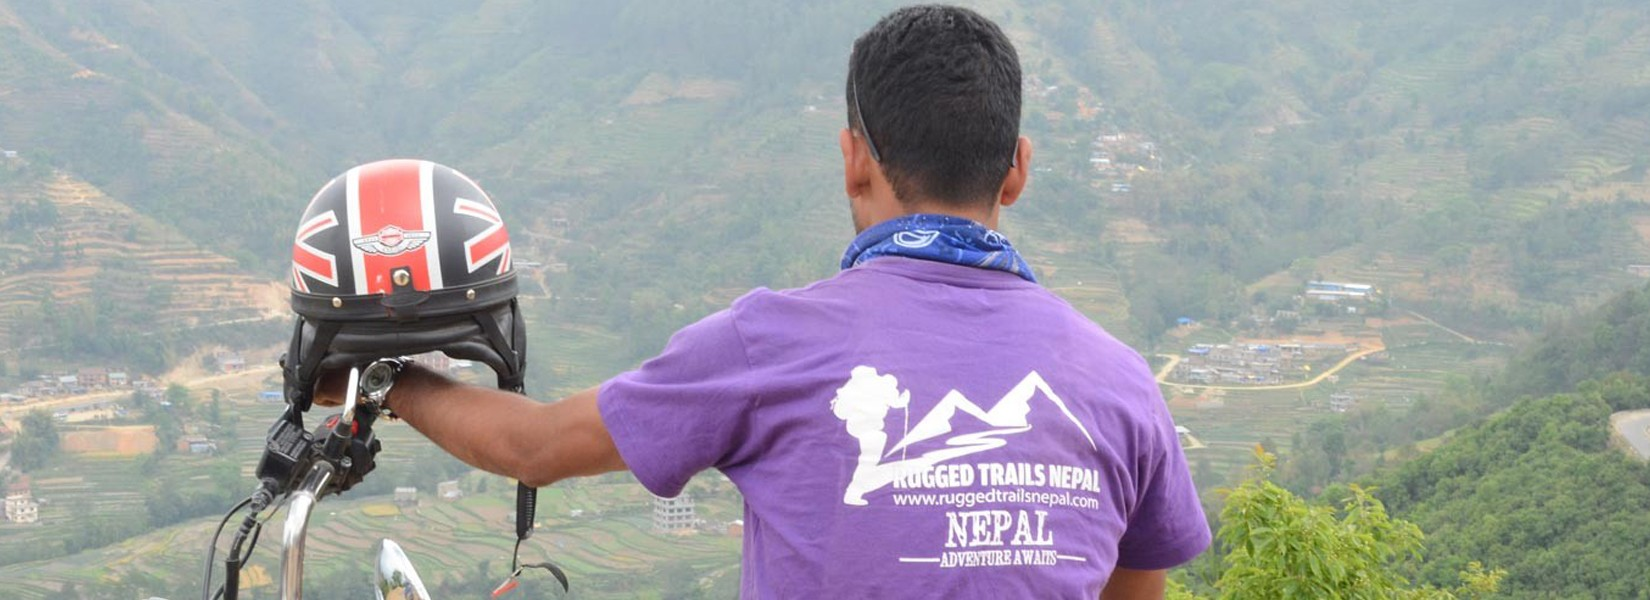 About Rugged Trails Nepal